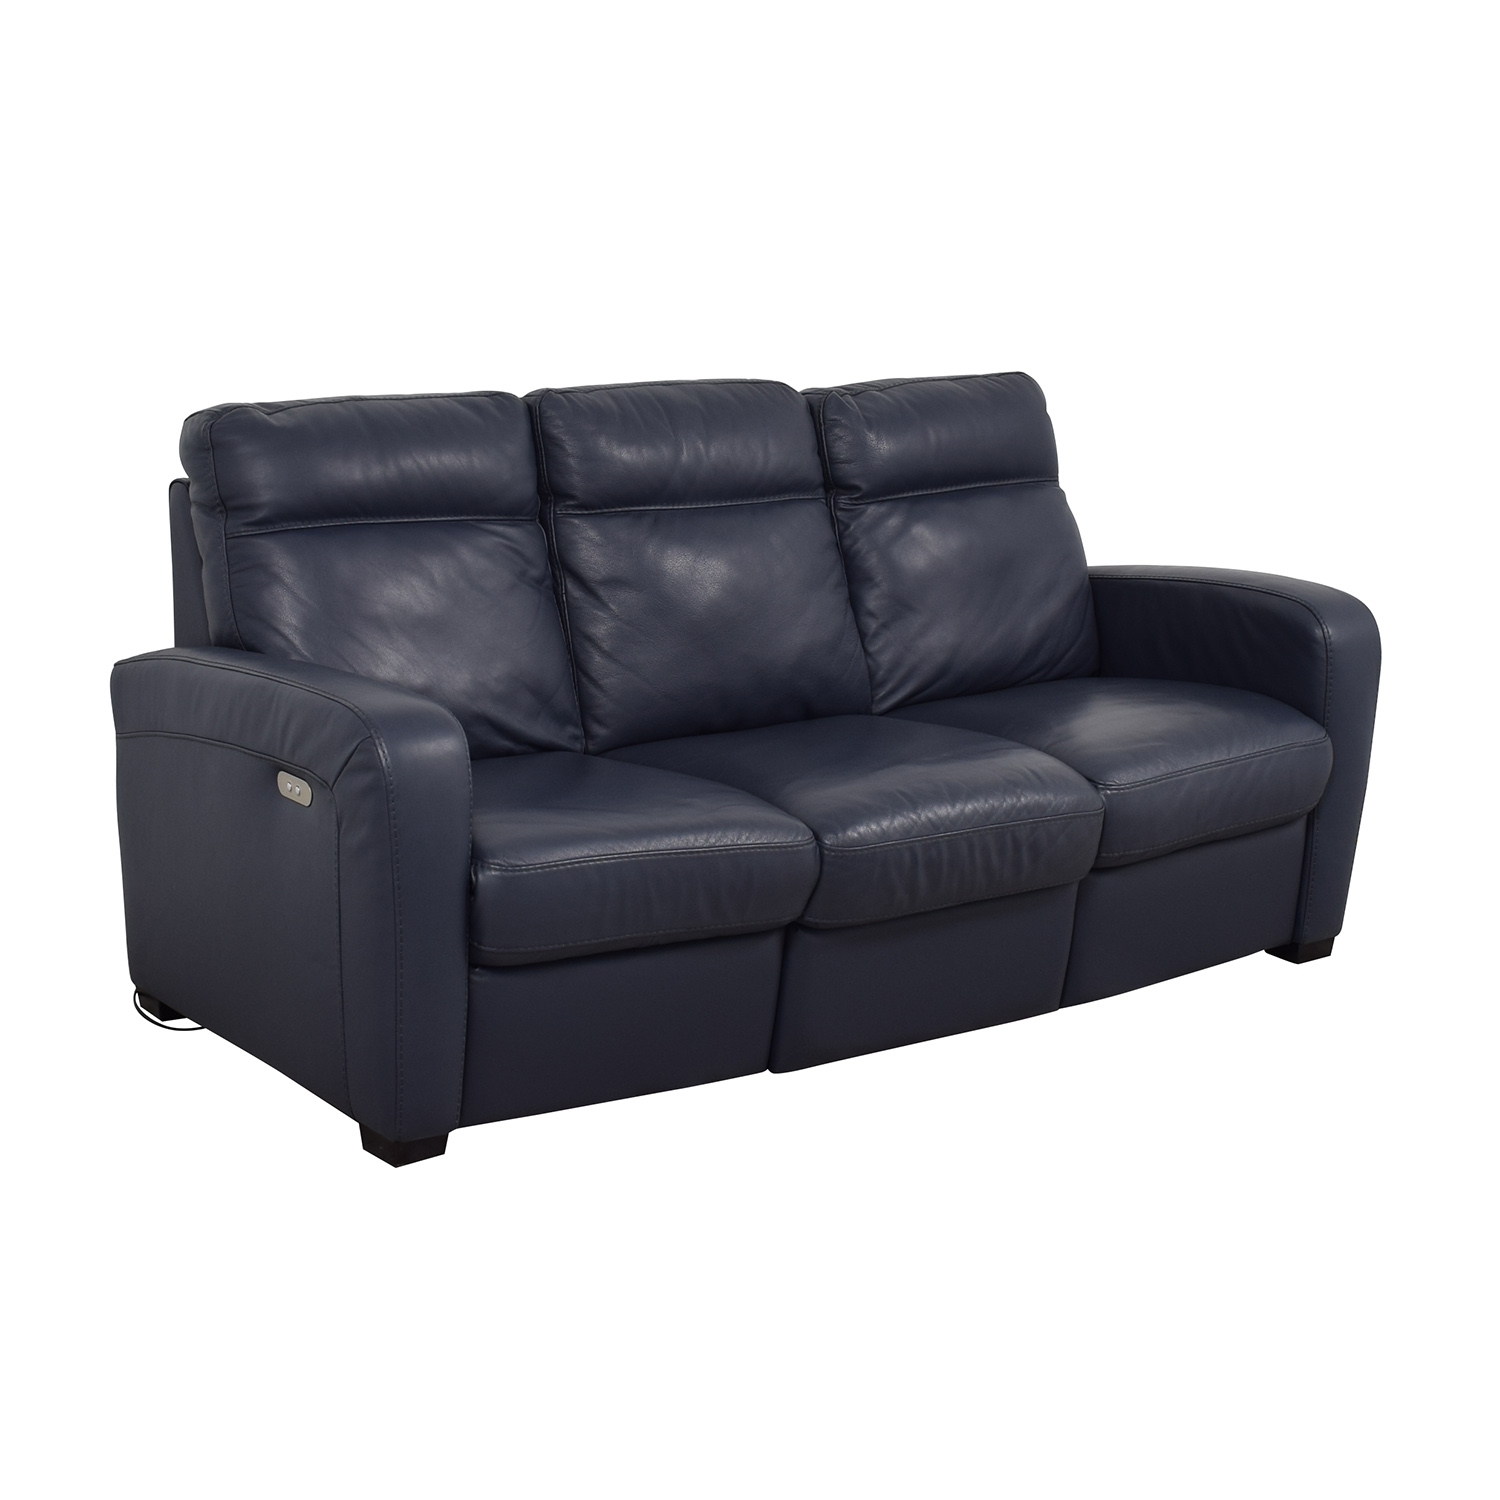 Marvelous 50 Off Natuzzi Natuzzi Rodrigo Navy Leather Power Reclining Sofa Sofas Gmtry Best Dining Table And Chair Ideas Images Gmtryco